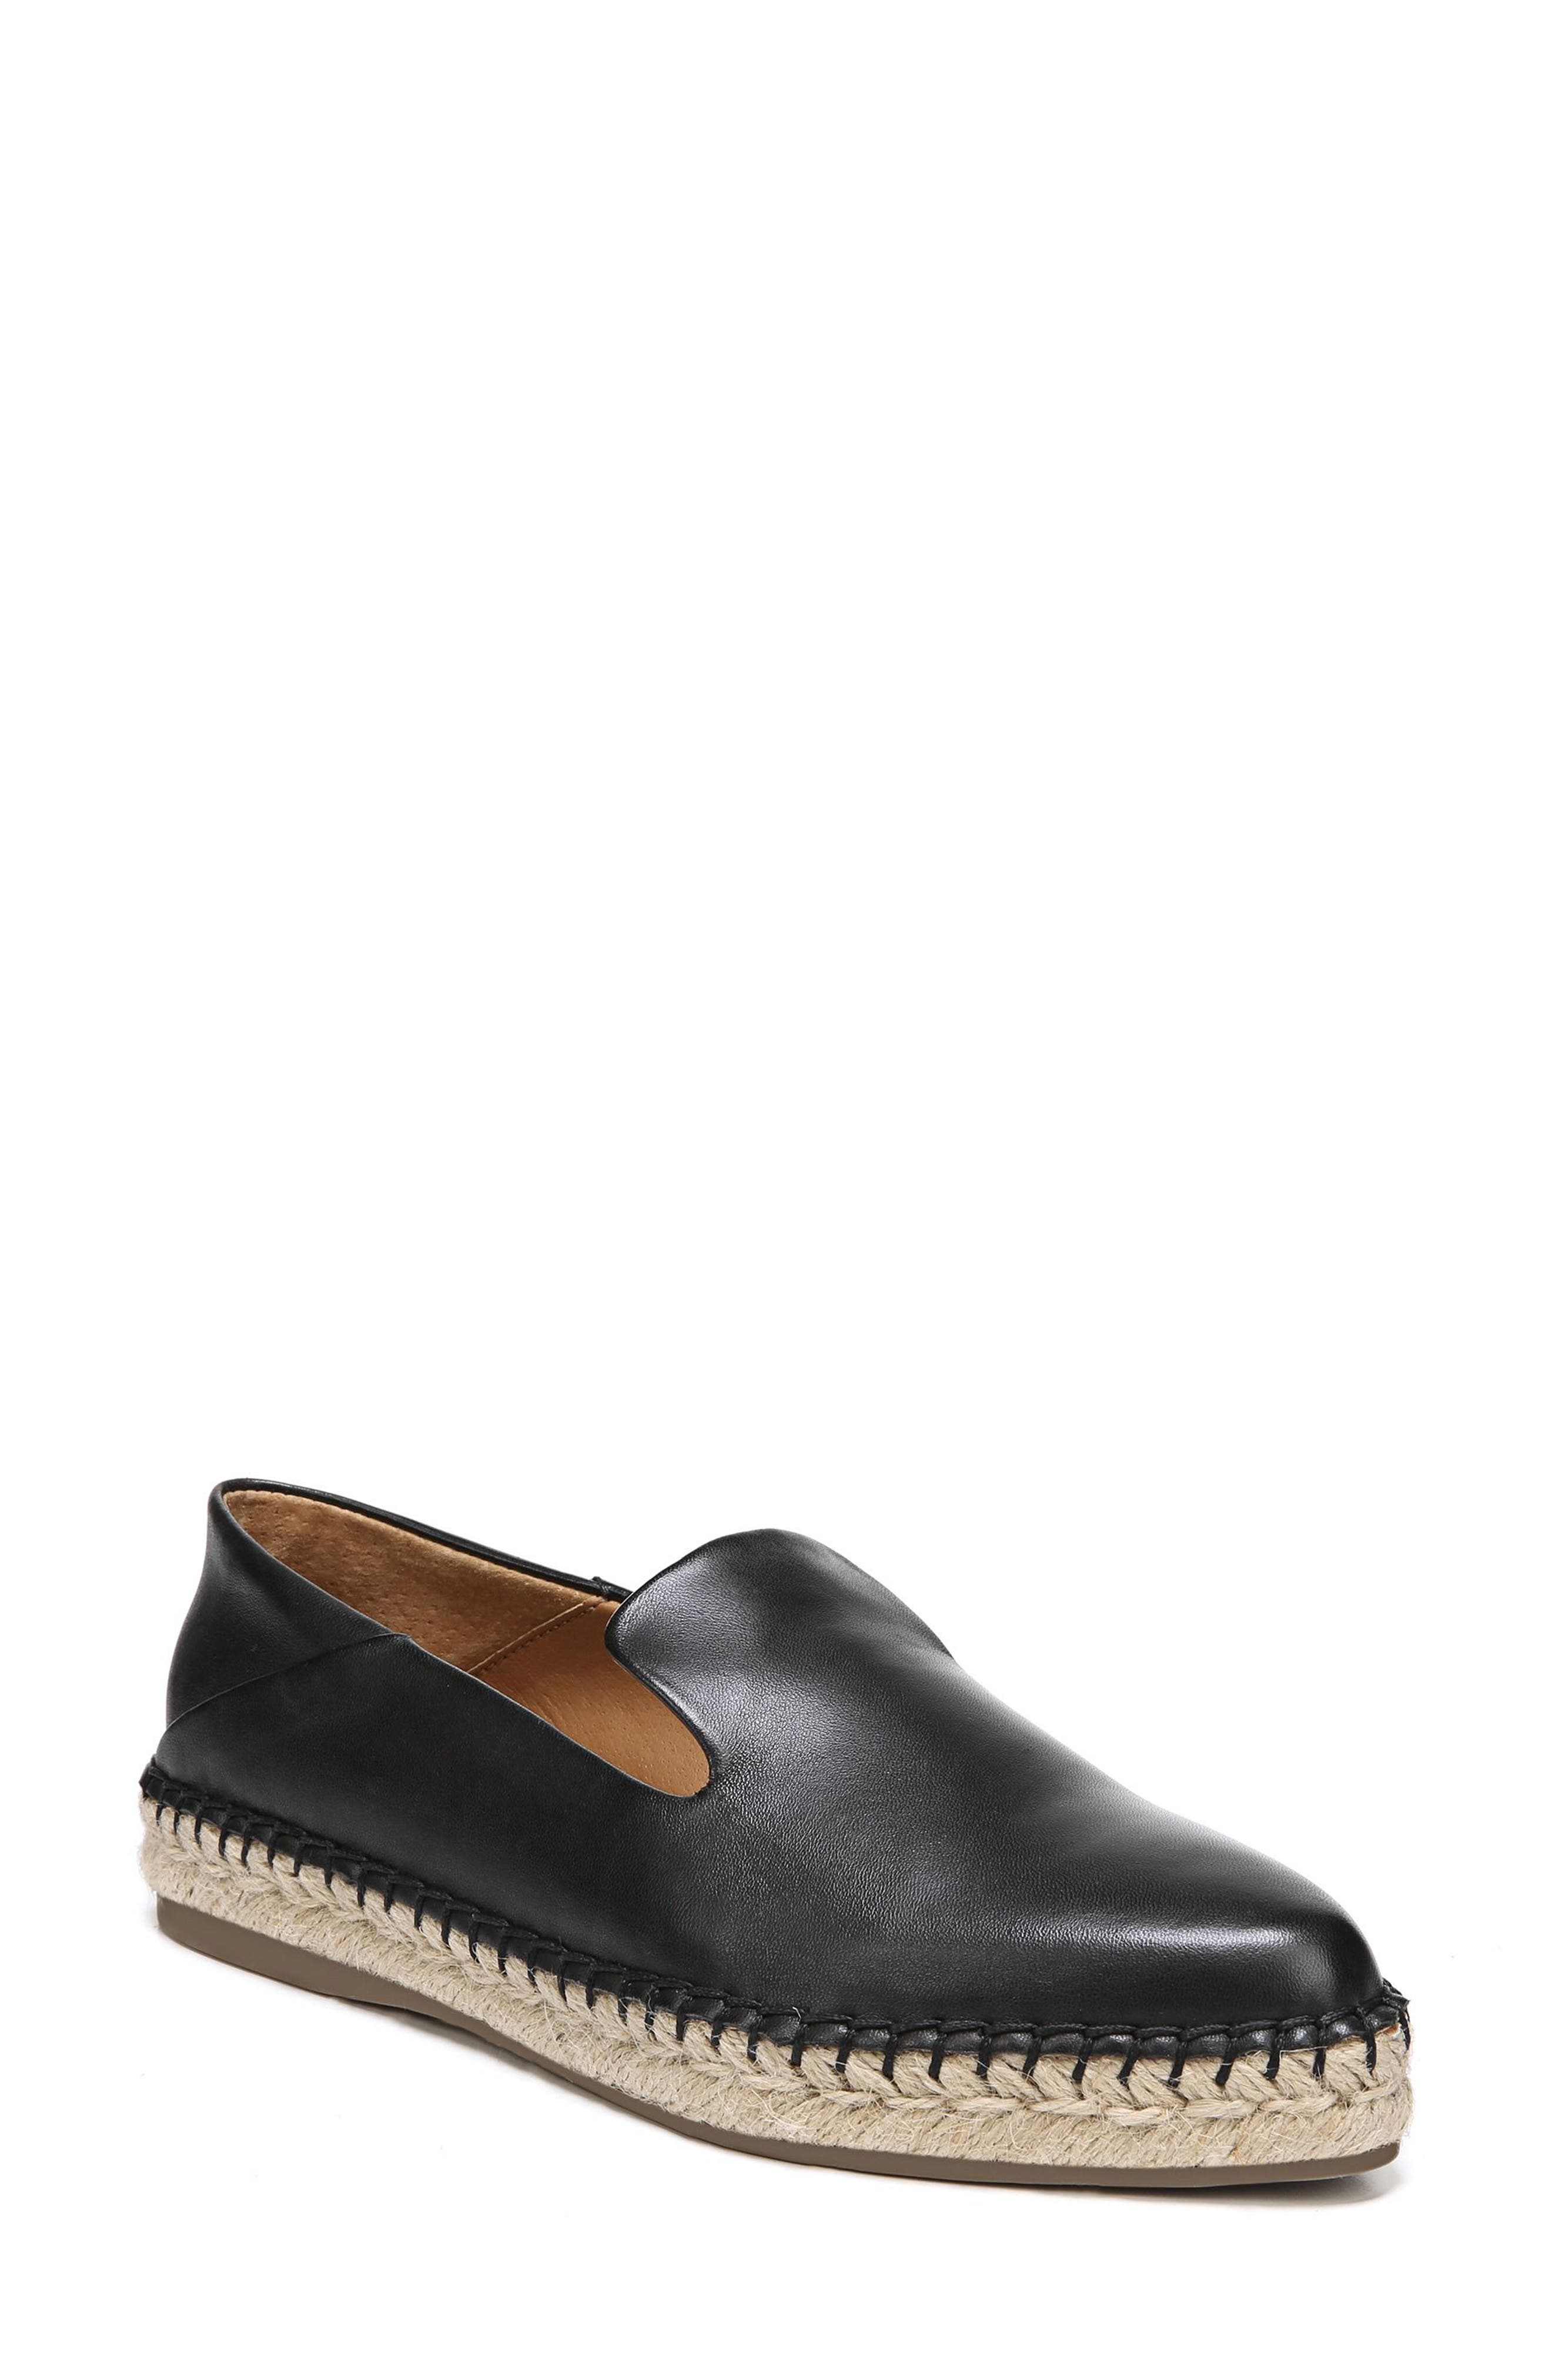 Eviana Espadrille Loafer,                             Main thumbnail 1, color,                             001